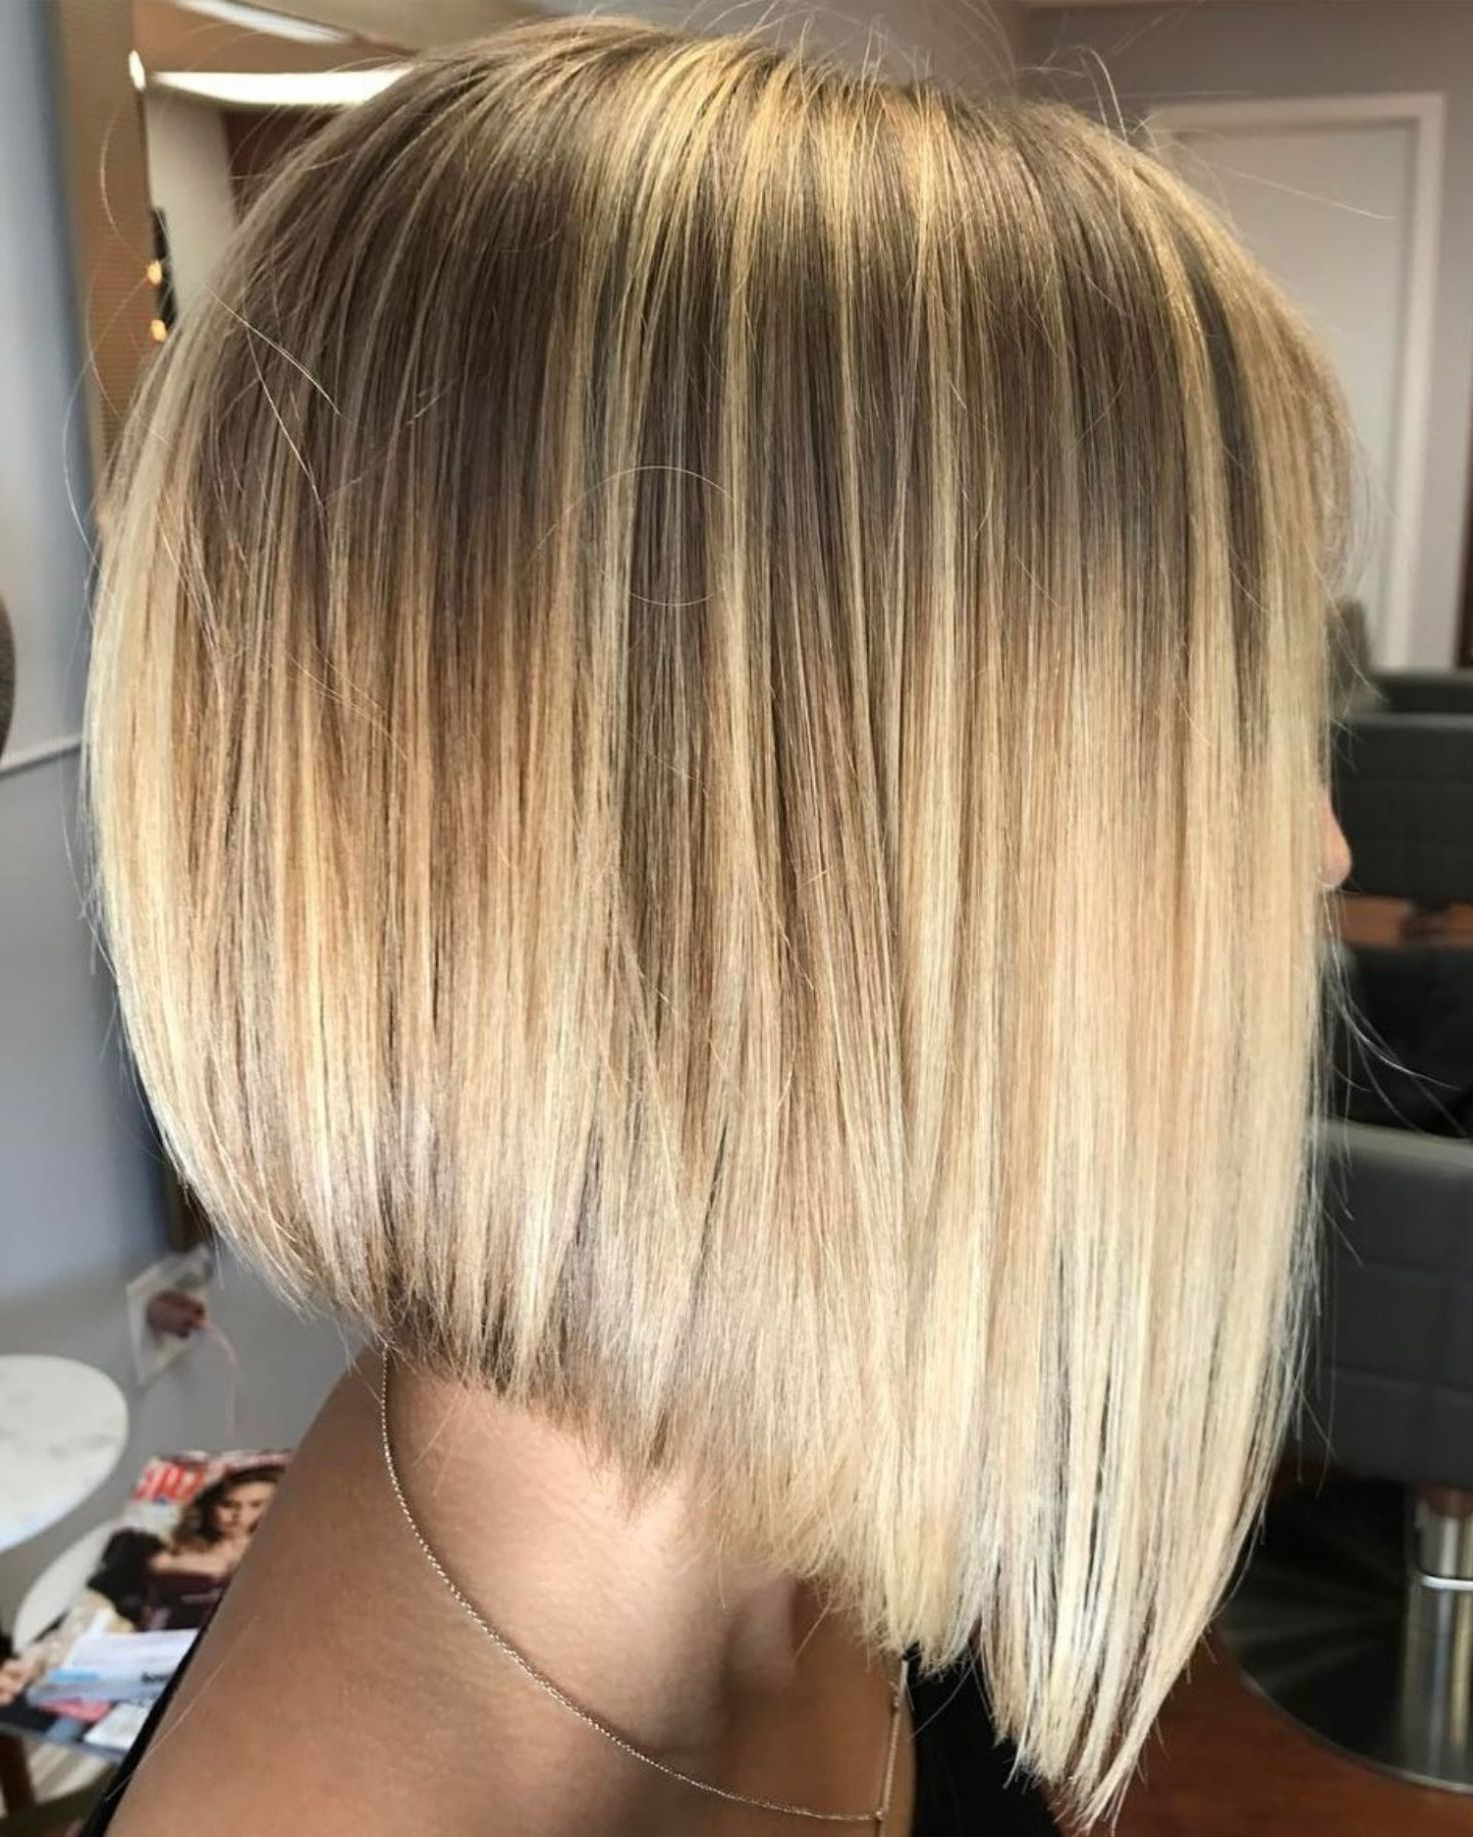 Widely Used Short To Medium Bob Hairstyles Within 60 Beautiful And Convenient Medium Bob Hairstyles (View 2 of 21)